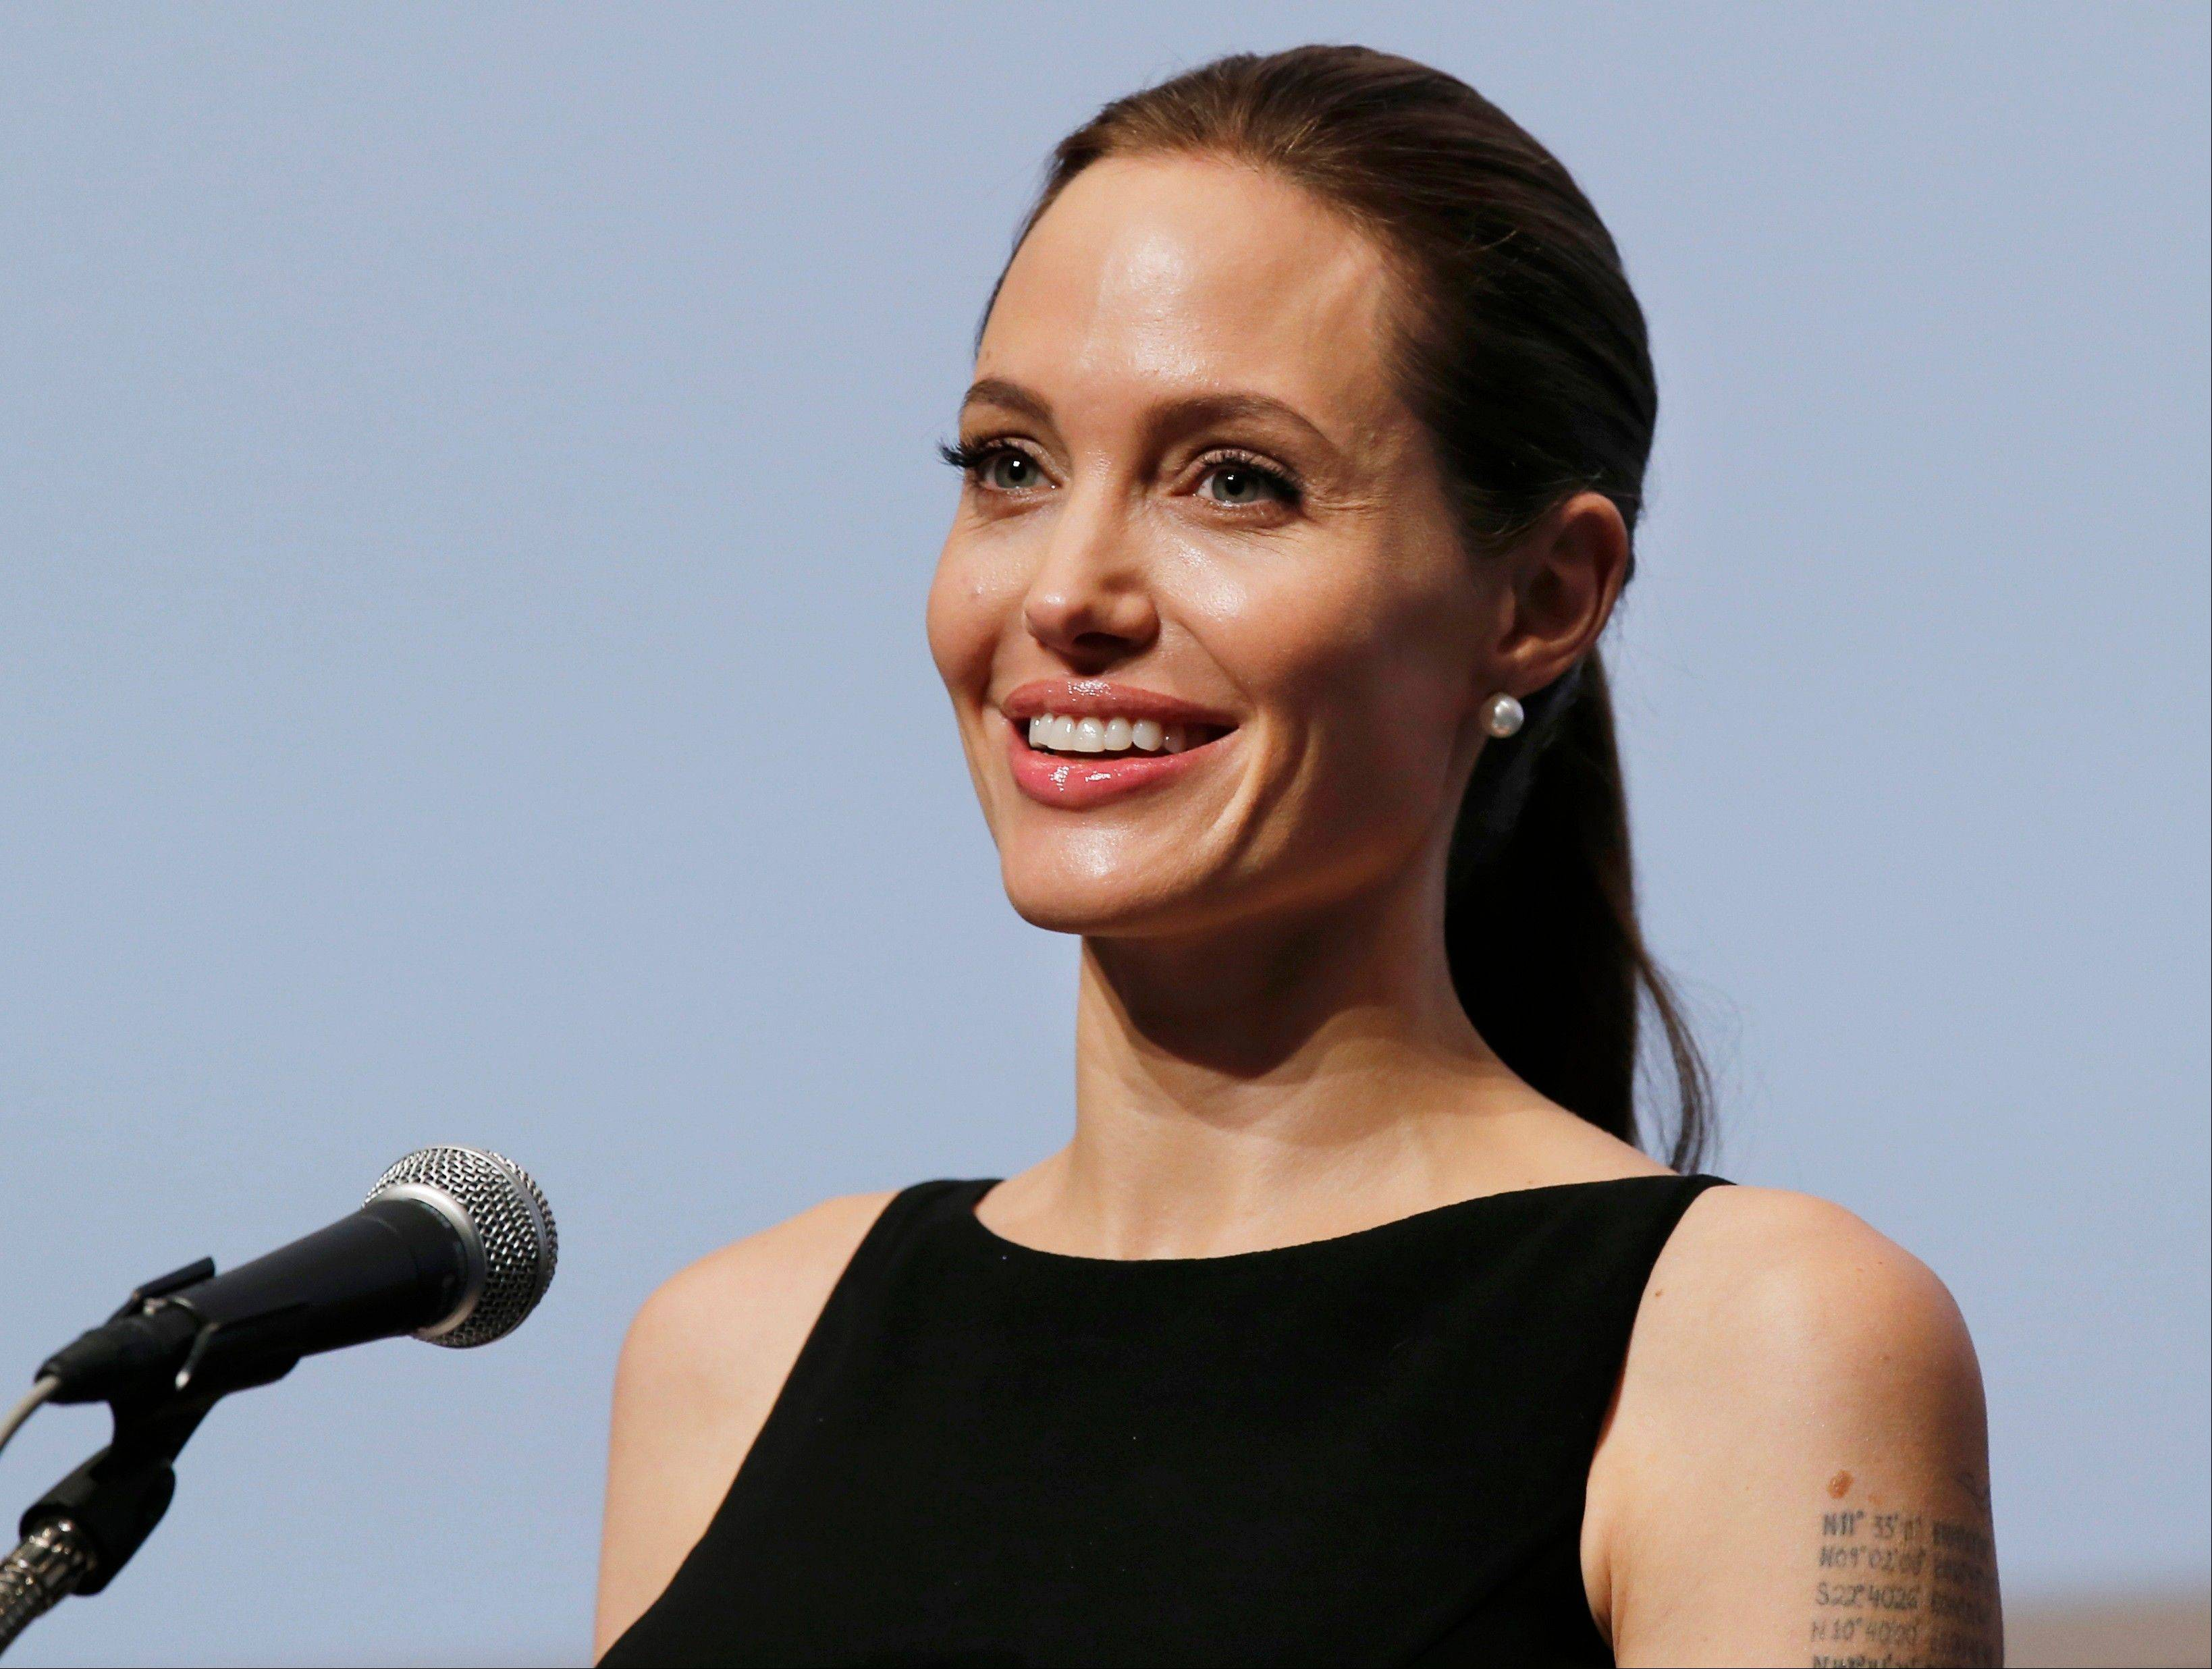 Angelina Jolie is in Sydney, Australia, to direct the film �Unbroken,� the true survival story of Lou Zamperini, a World War II hero and track star who ran in the 1936 Berlin games.